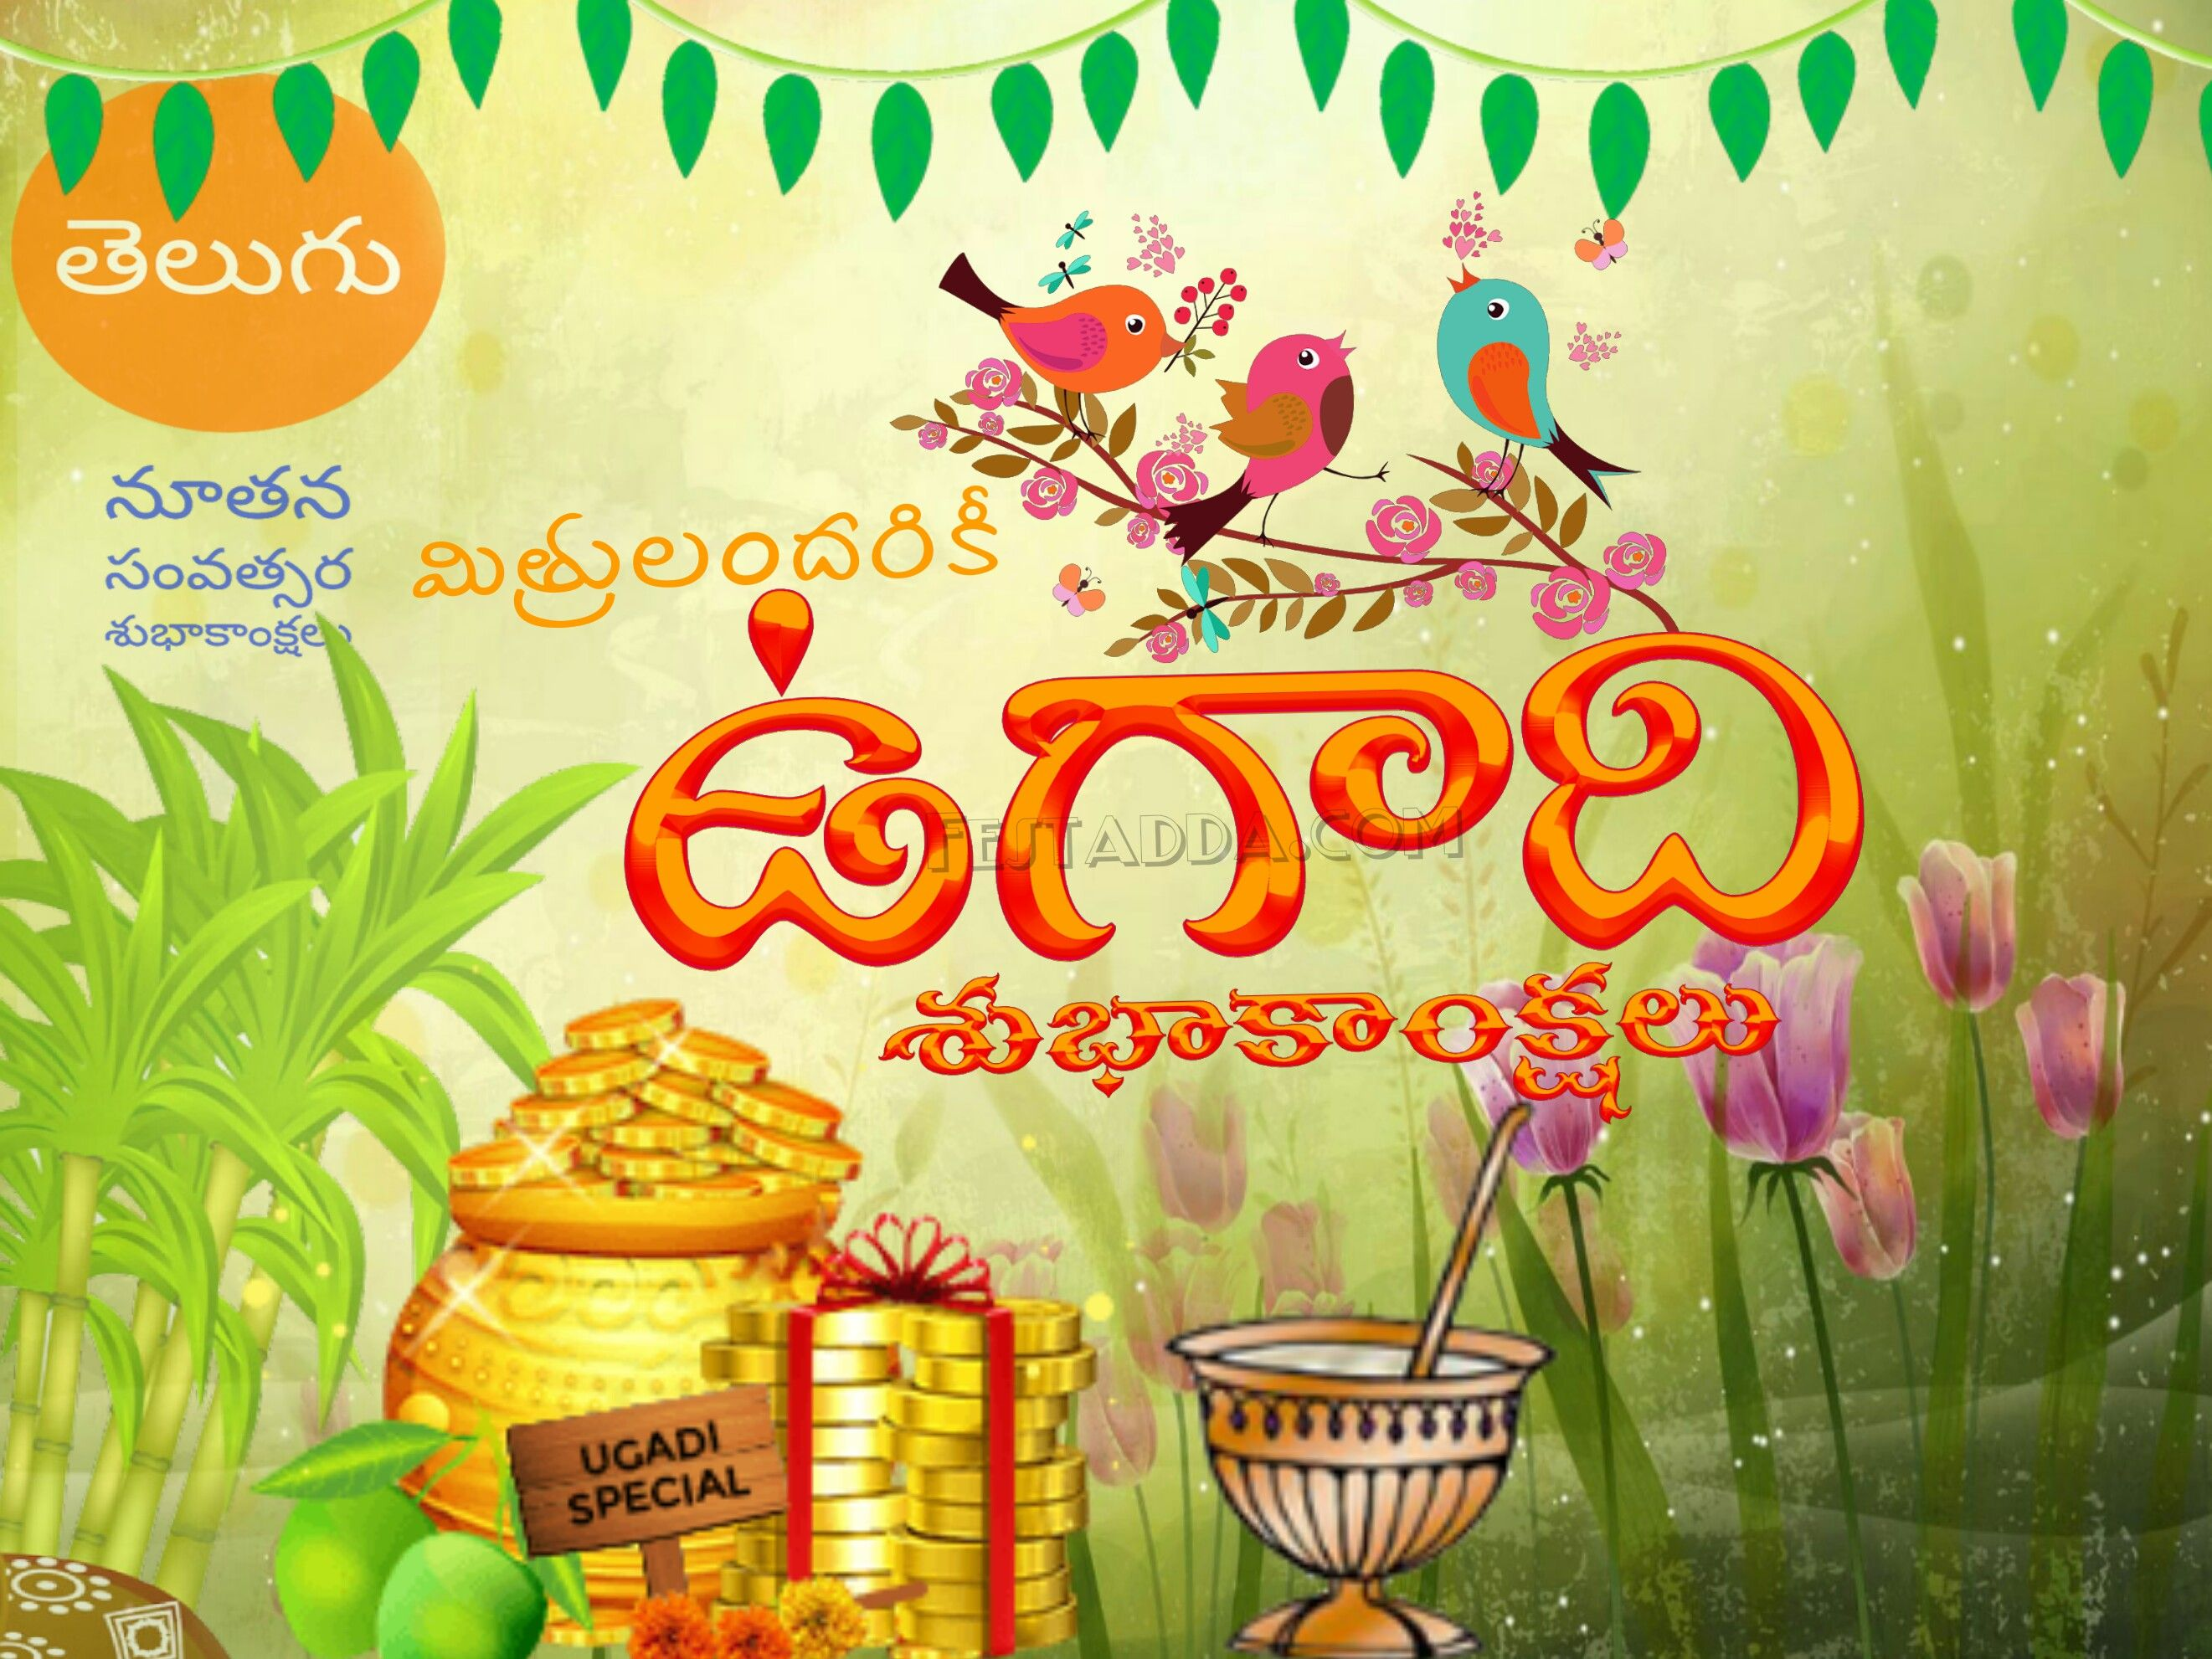 Happy Ugadi Wishes 2020 Images Photos Wallpapers Pics Full Hd In